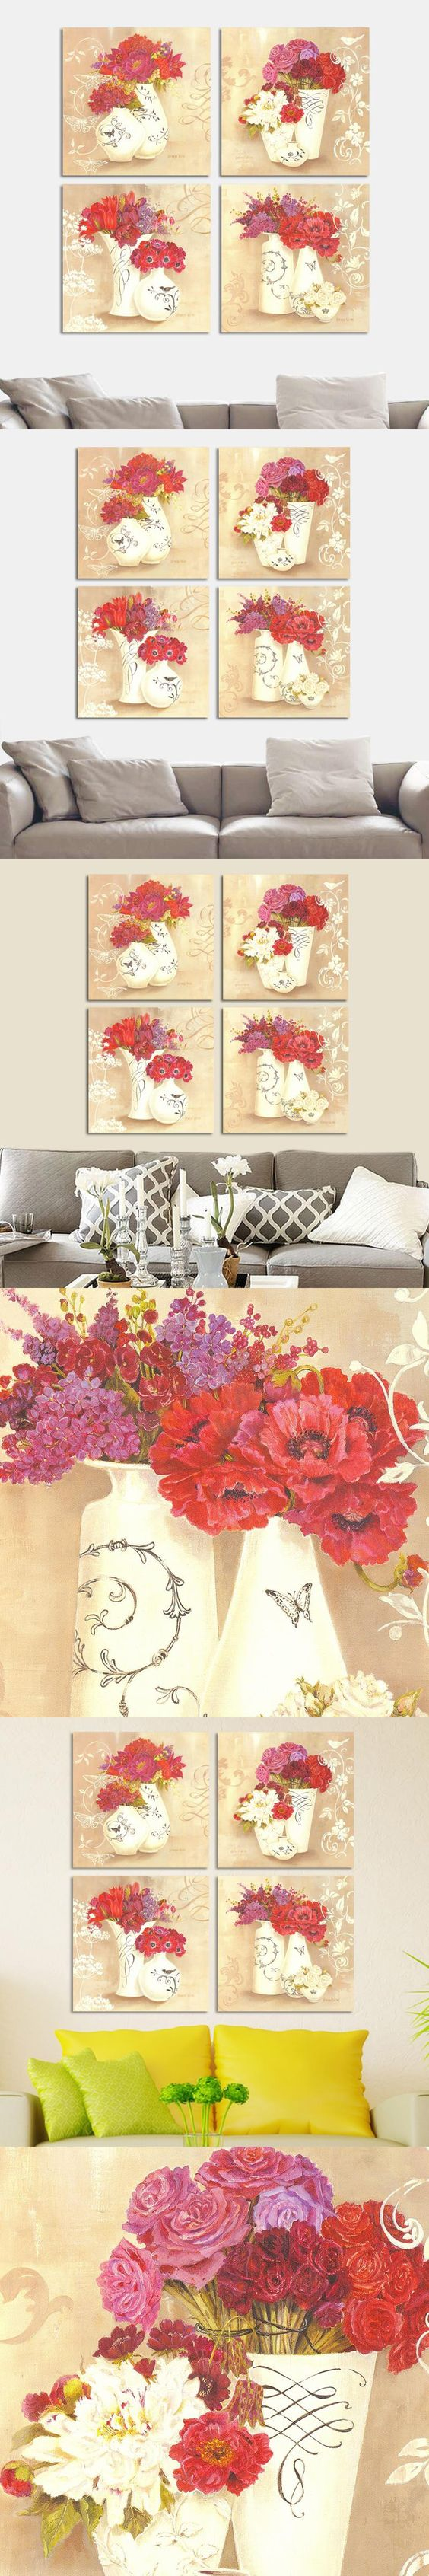 4PCS Elegant Colorful Flower Wall Painting Home Decoration Modern Charming Flower Canvas Painting Bedroom Atelier Art Picture $1